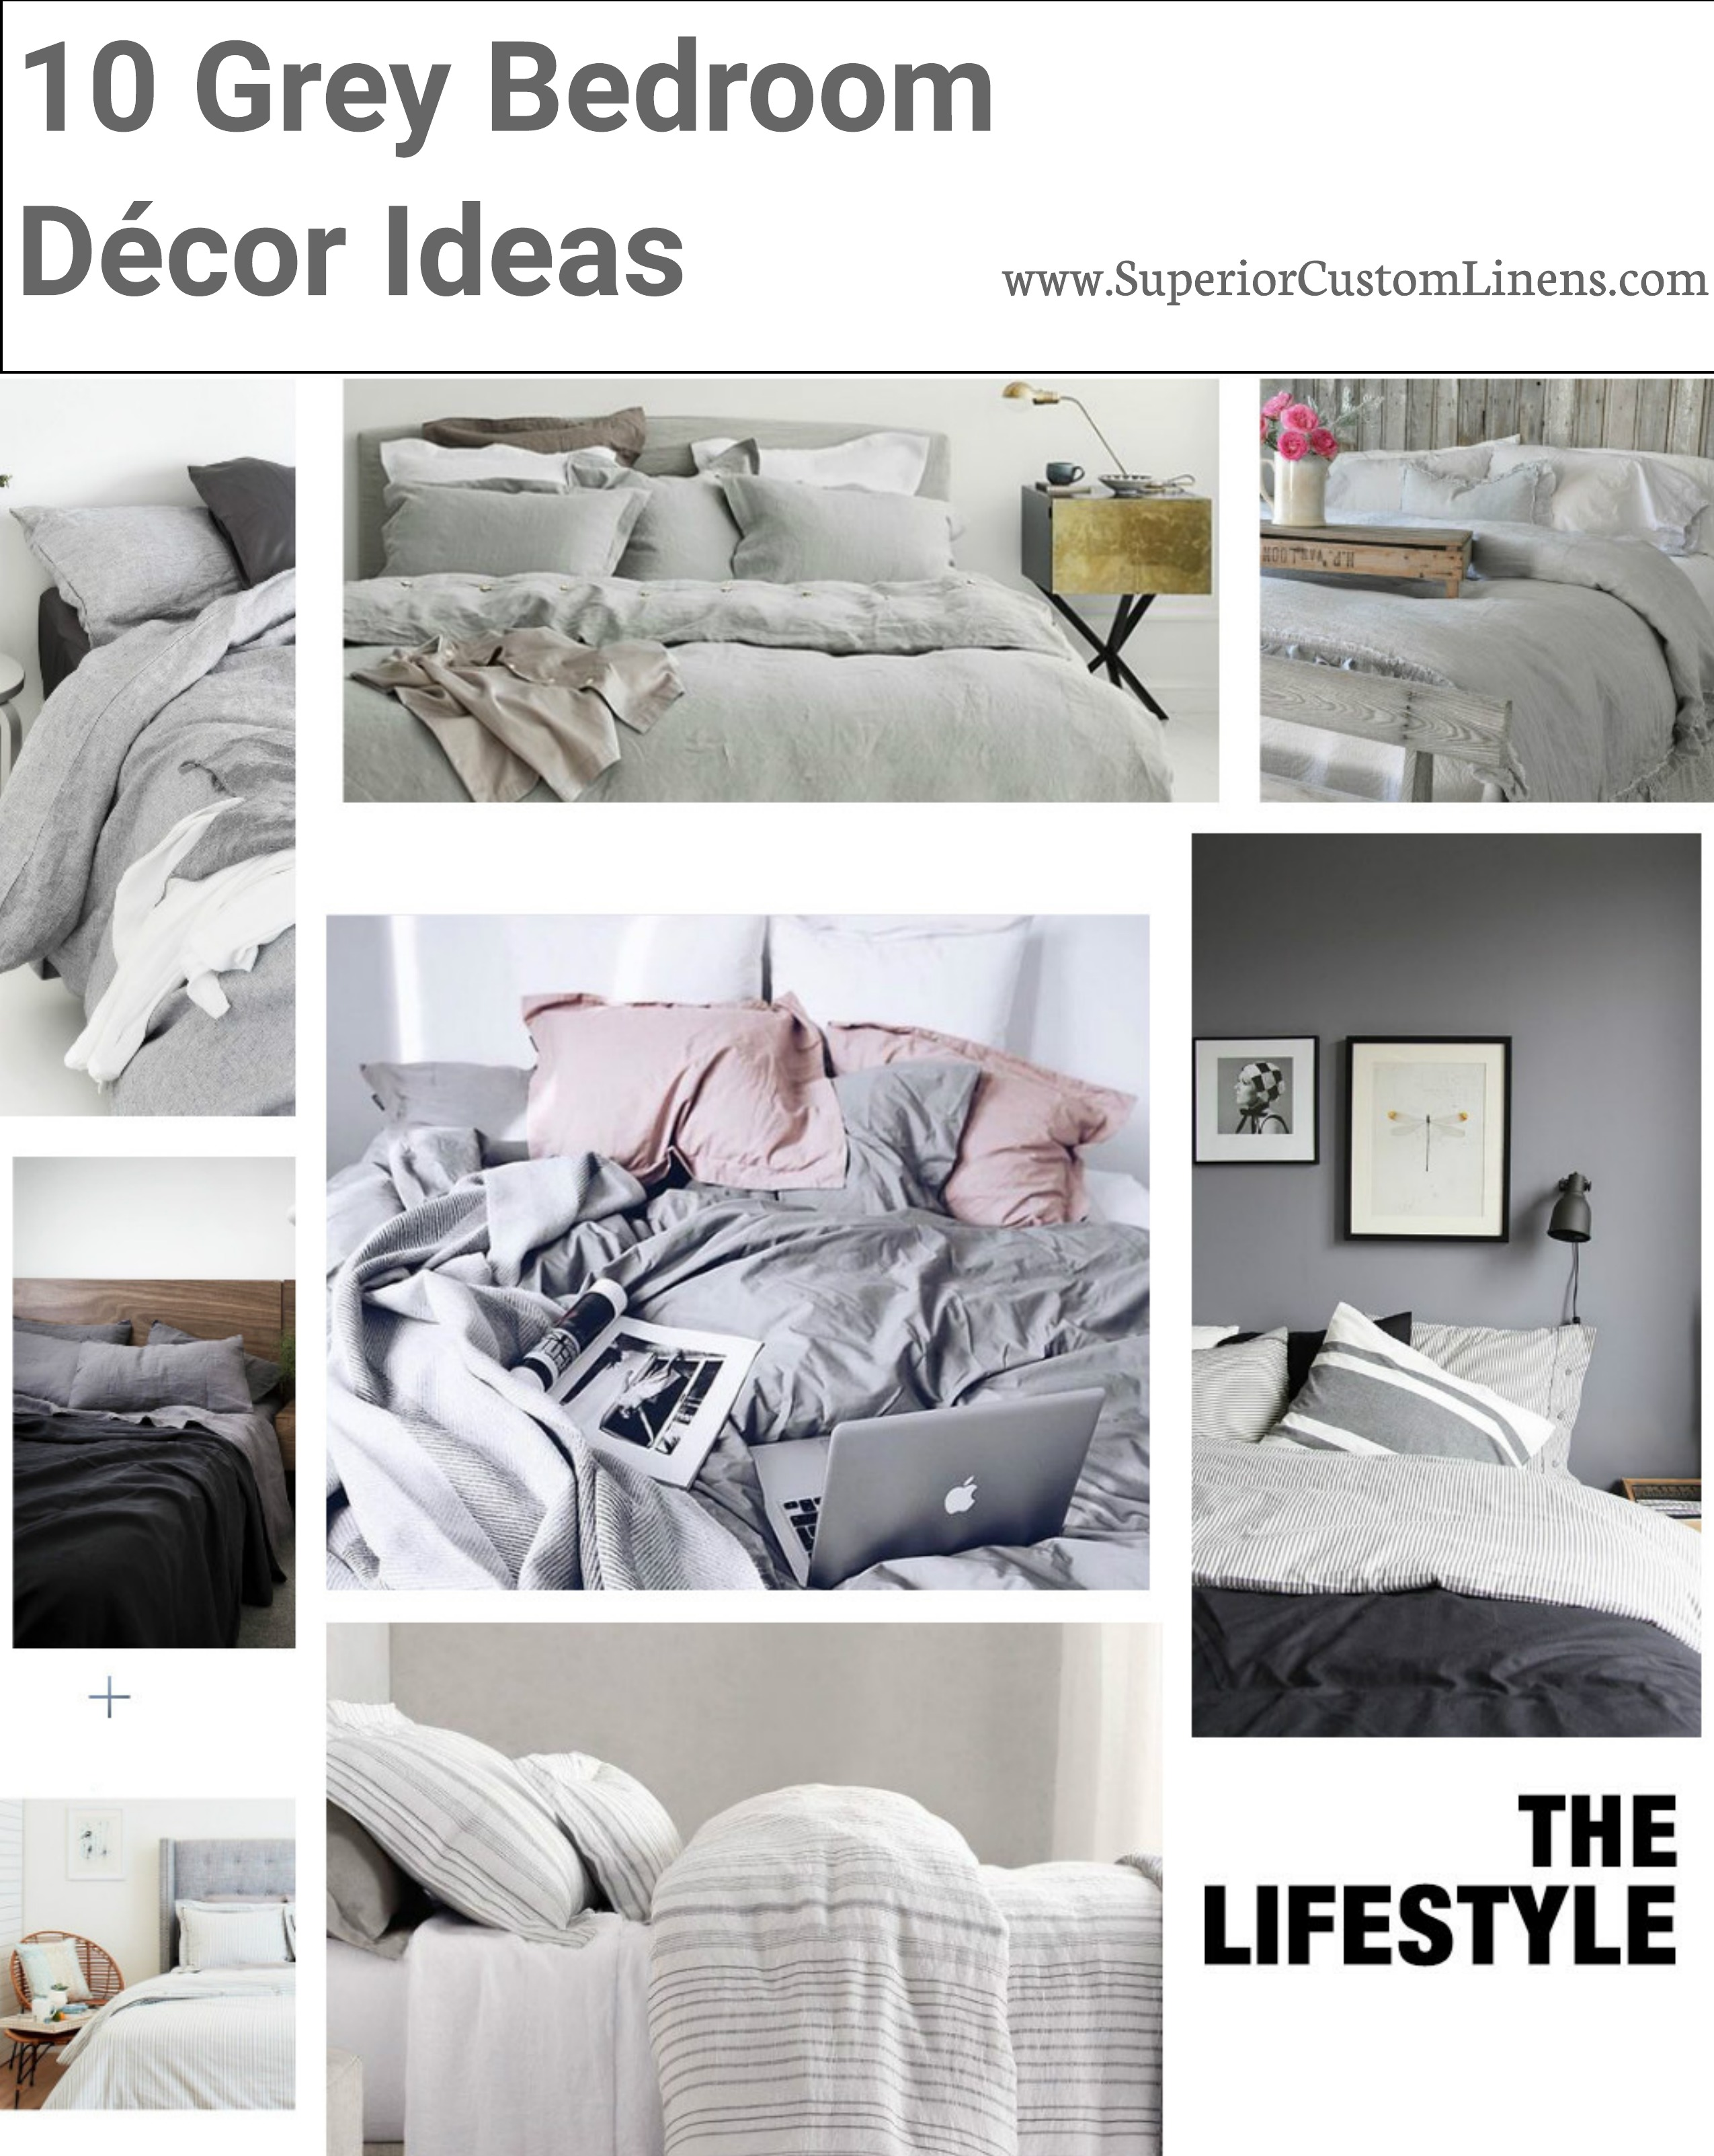 10 Grey Bedroom Decor Ideas Superior Custom Linens